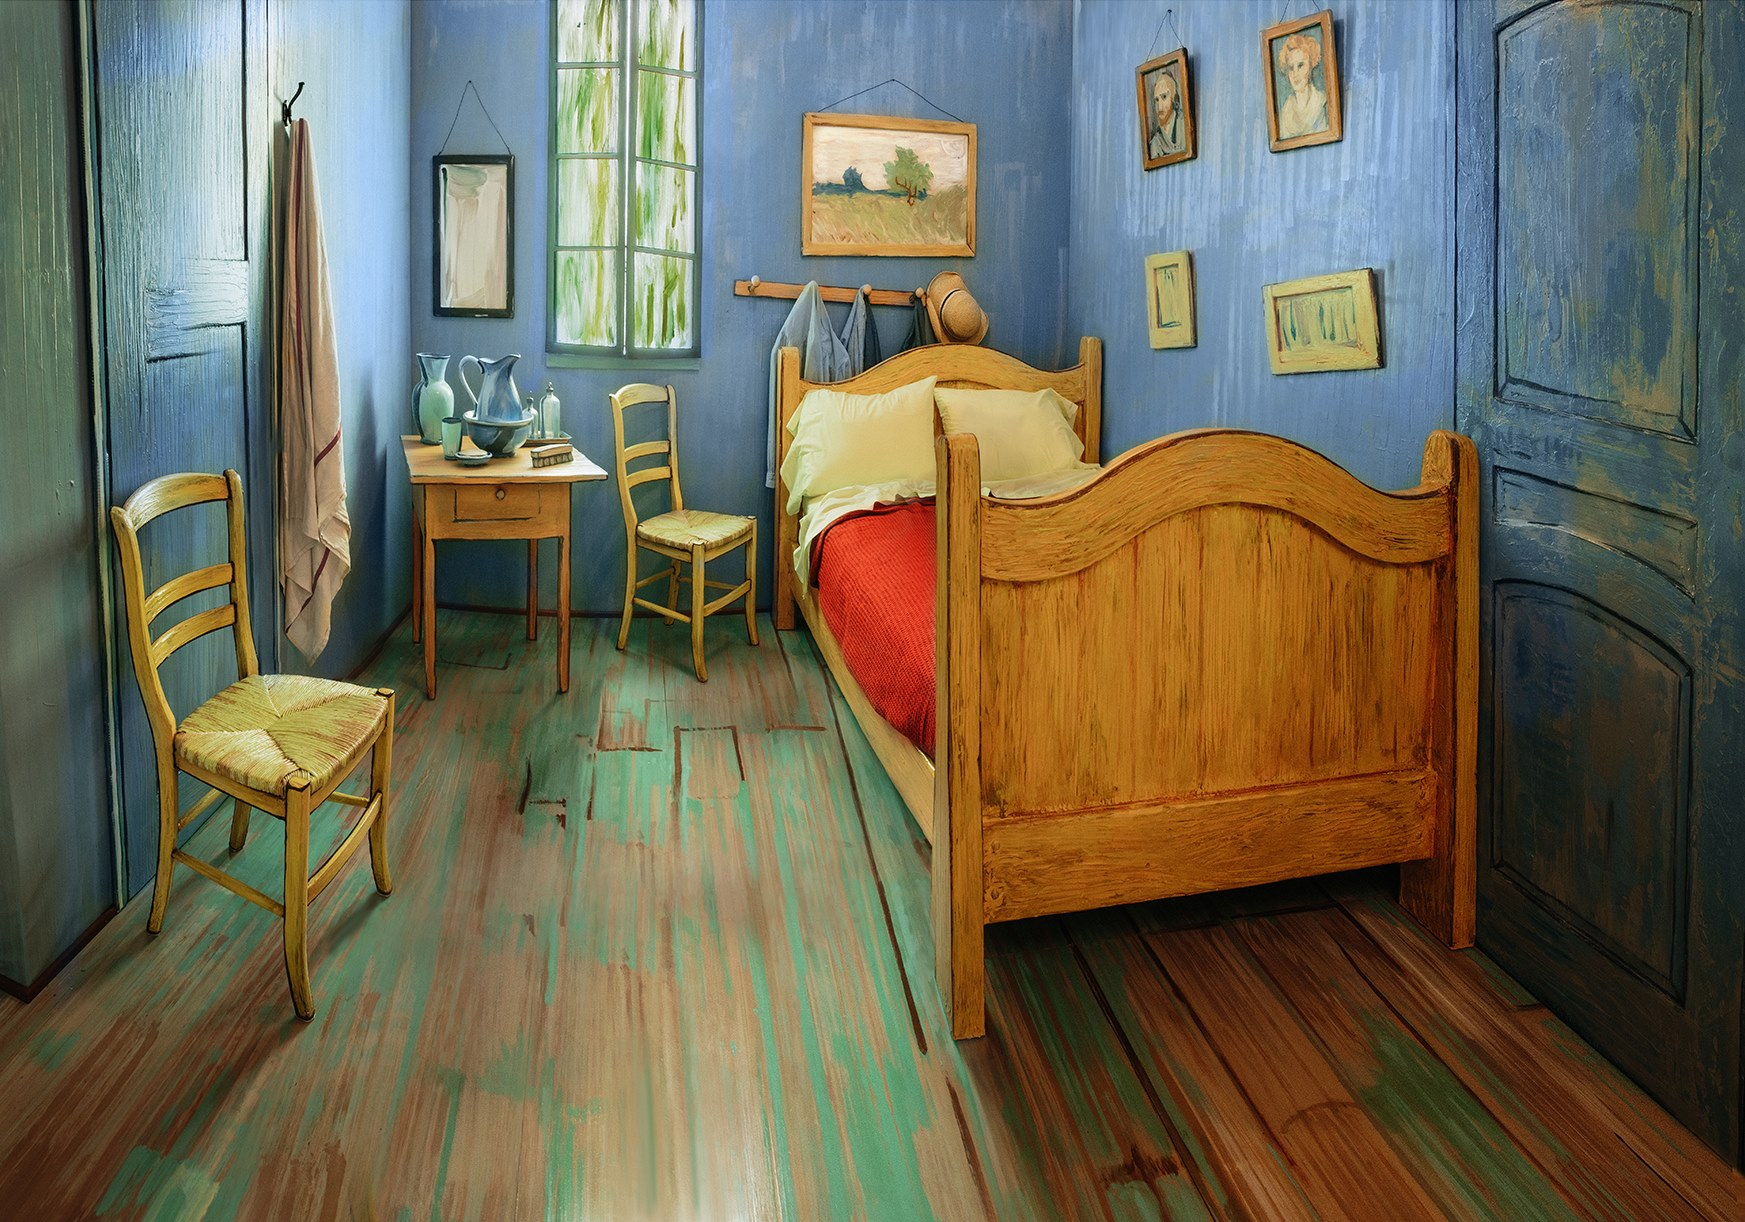 art institute of chicago rebuilds vincent van gogh's bedroom to visit